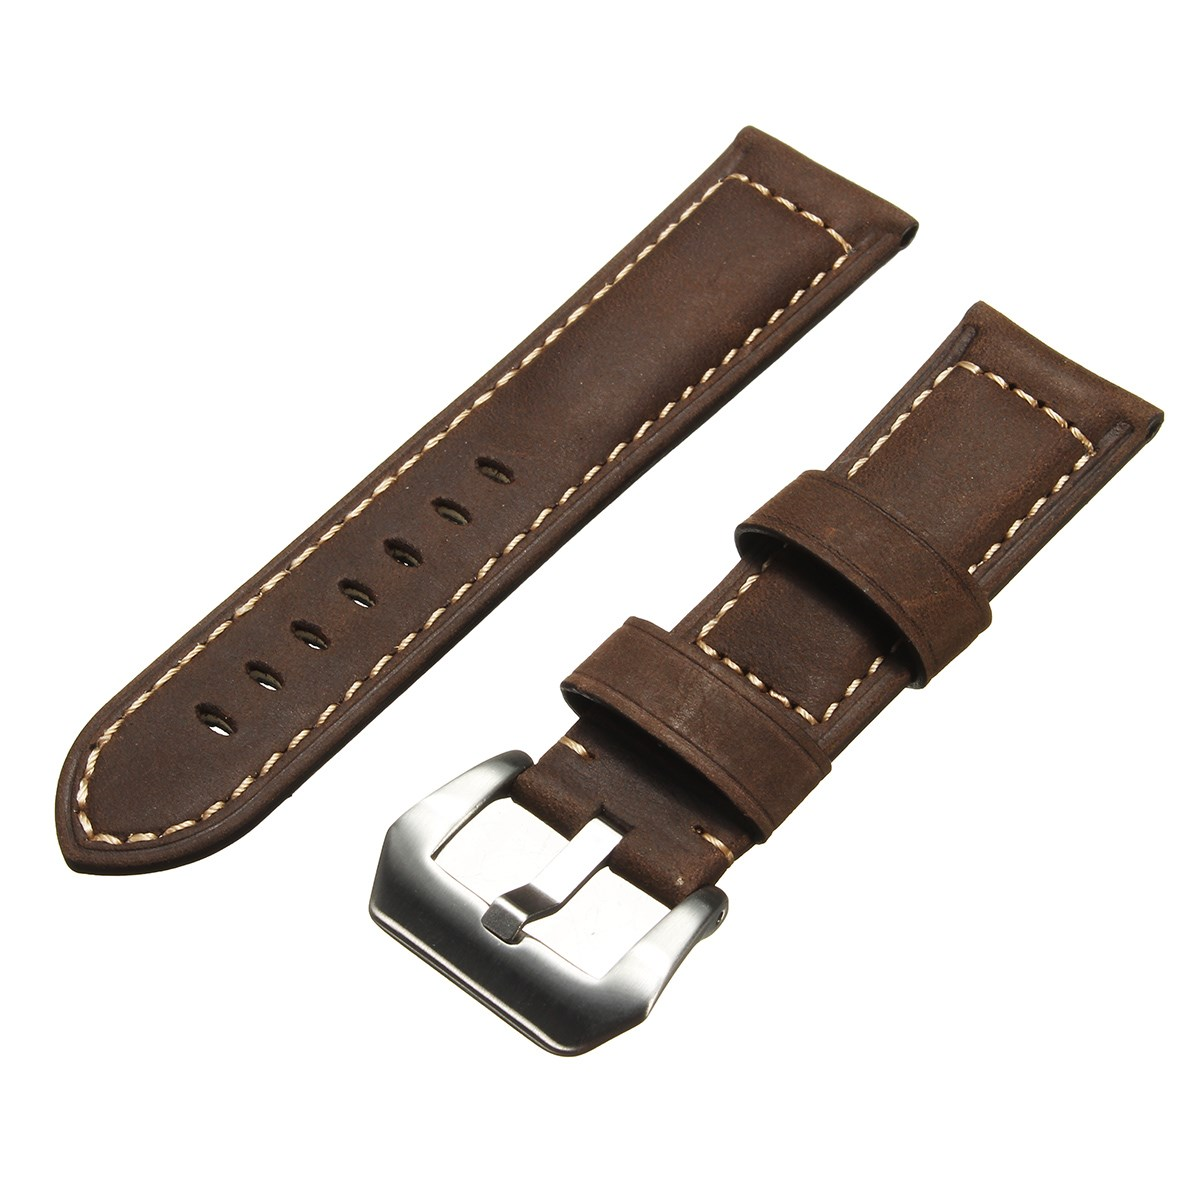 New Mens Leather Watch Strap 22 24mm Dark /Light Brown for Panerai Watch High Quality Handmade Retro Leather Strap new arrive top quality oil red brown 24mm italian vintage genuine leather watch band strap for panerai pam and big pilot watch